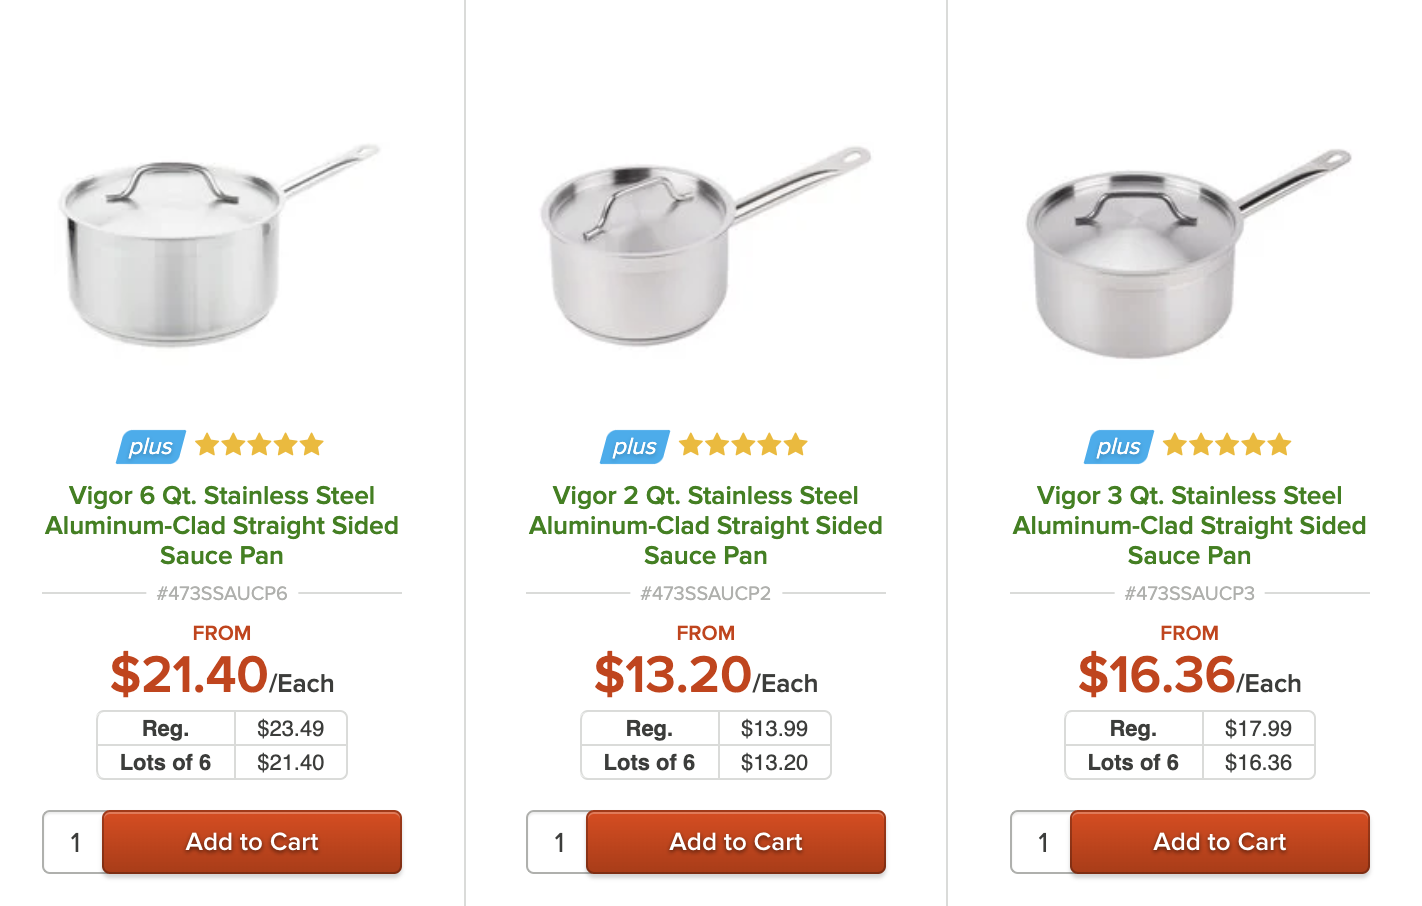 A screenshot of pans for sale at an online kitchen supply retailer.